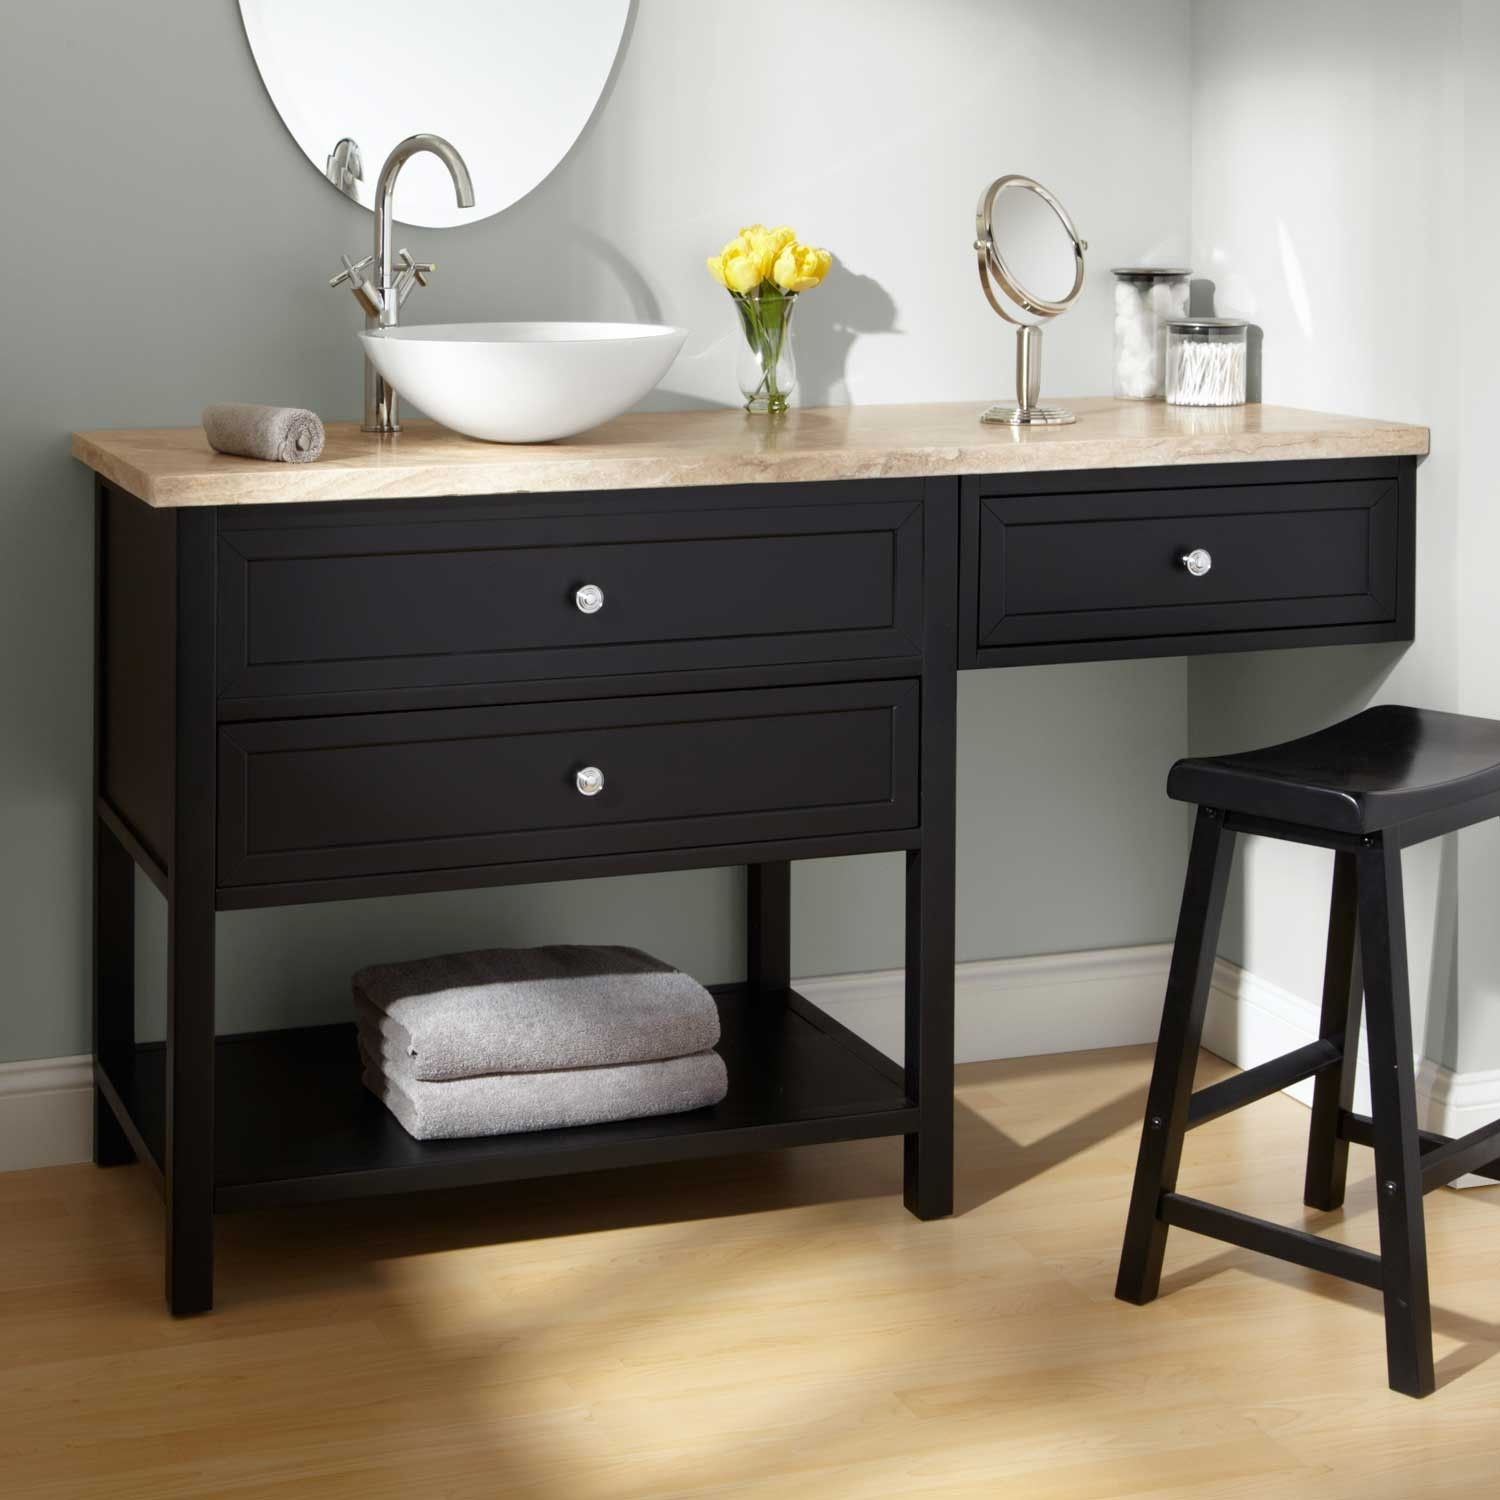 Bathroom Makeup Vanity And Chair Sink Vanities 60 Taren Black V